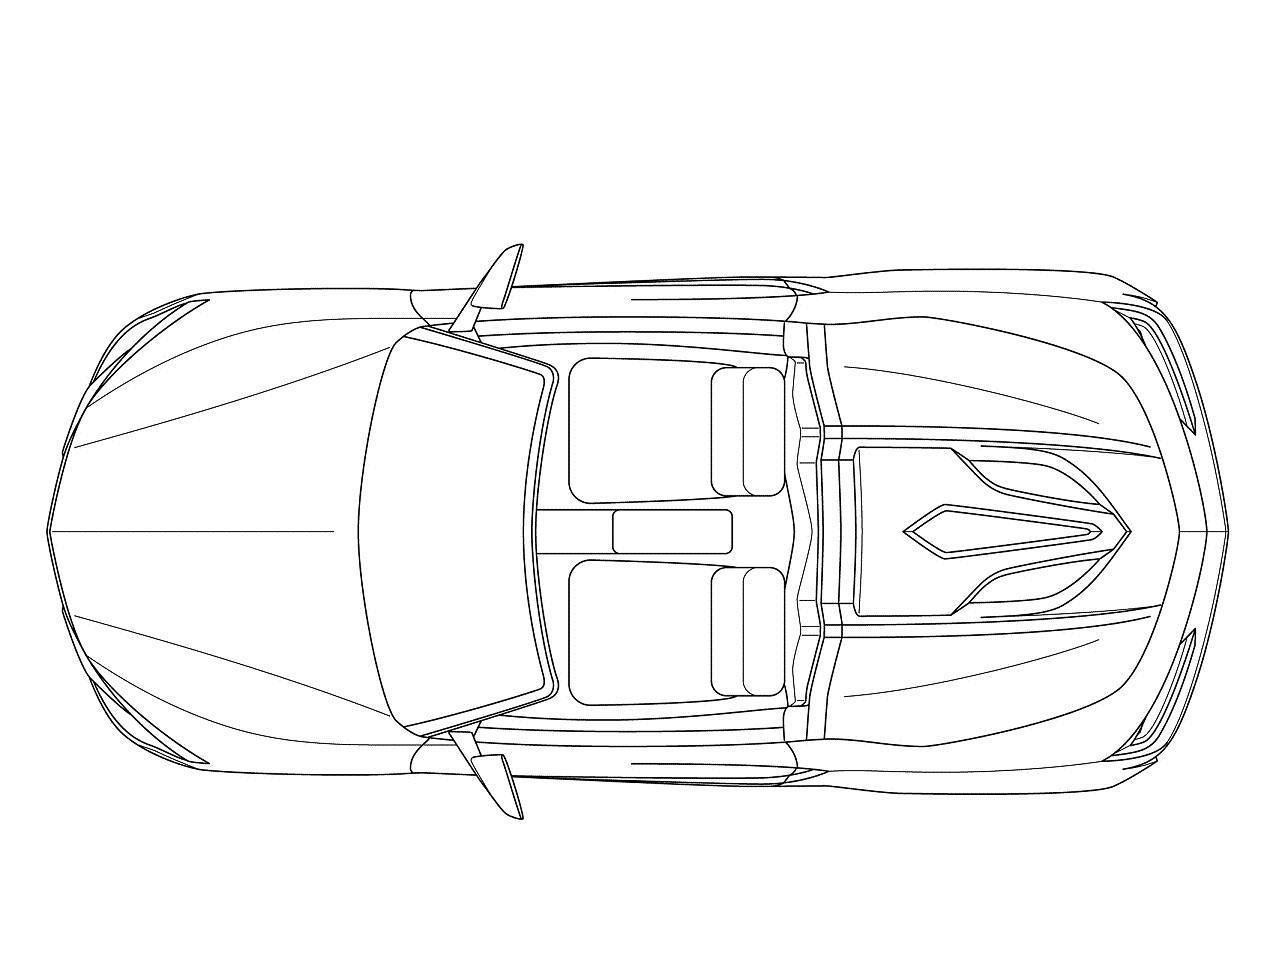 The Best Free Acura Drawing Images Download From 29 Free